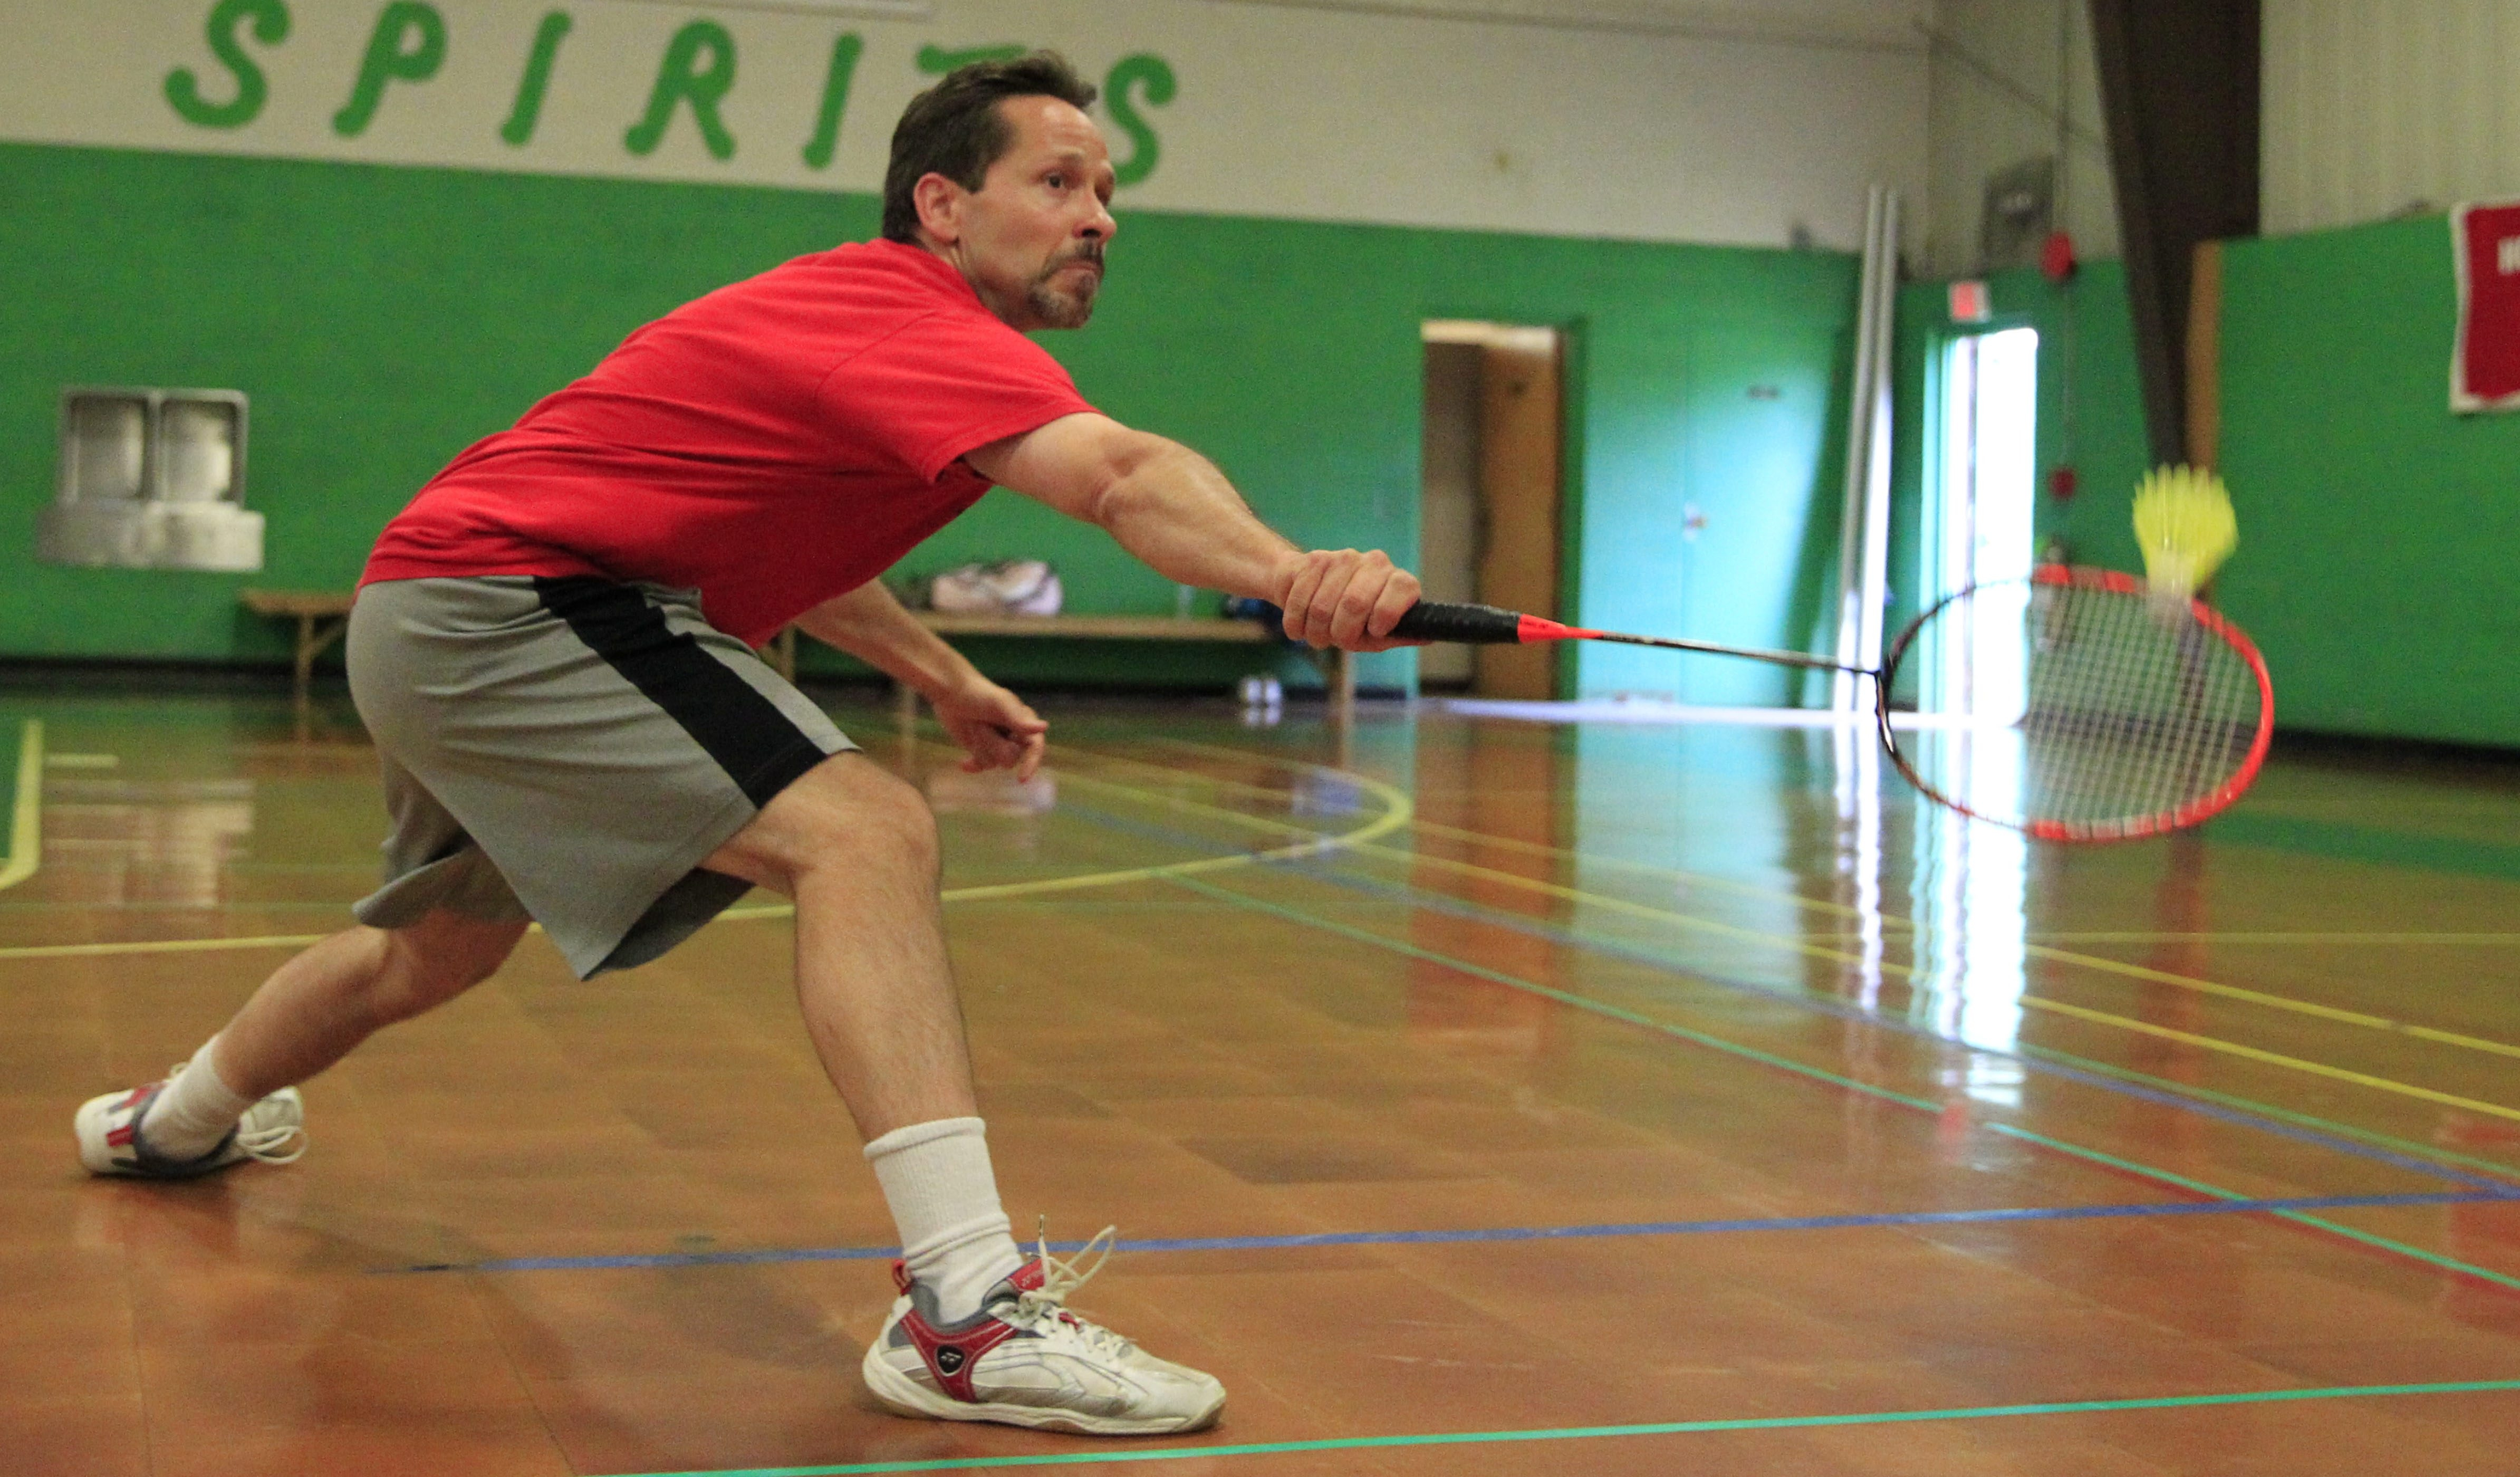 Michael Hacker and his wife, Cara, wanted to share their love of badminton with others so they opened a club at St. Matthews School Gymnasium in North Tonawanda.